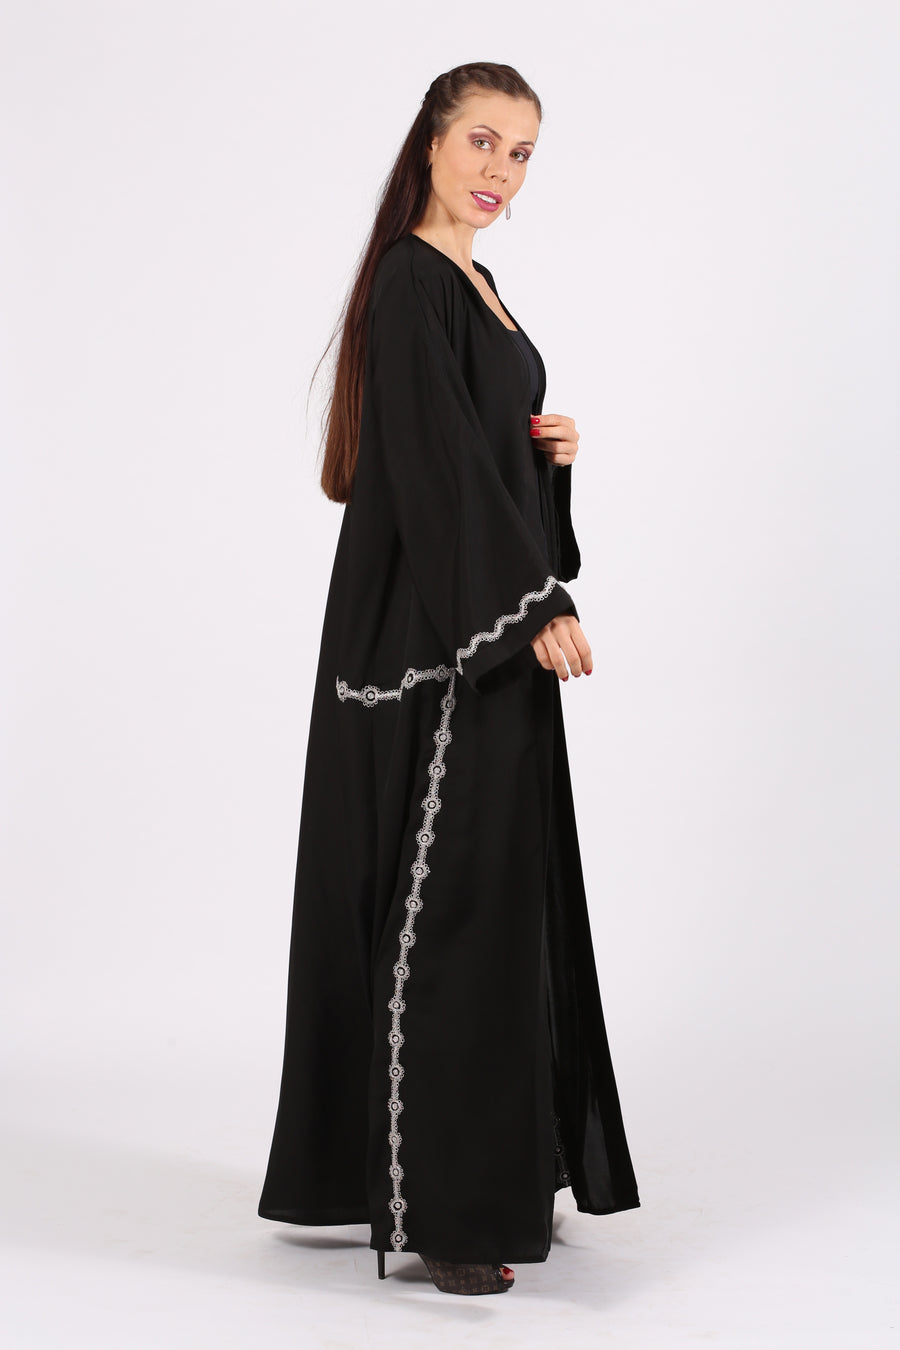 BLACK ABAYA  W/SILVER/ BLUE / PINK  CIRCLE EMB. ON BOTTOM & HANDS